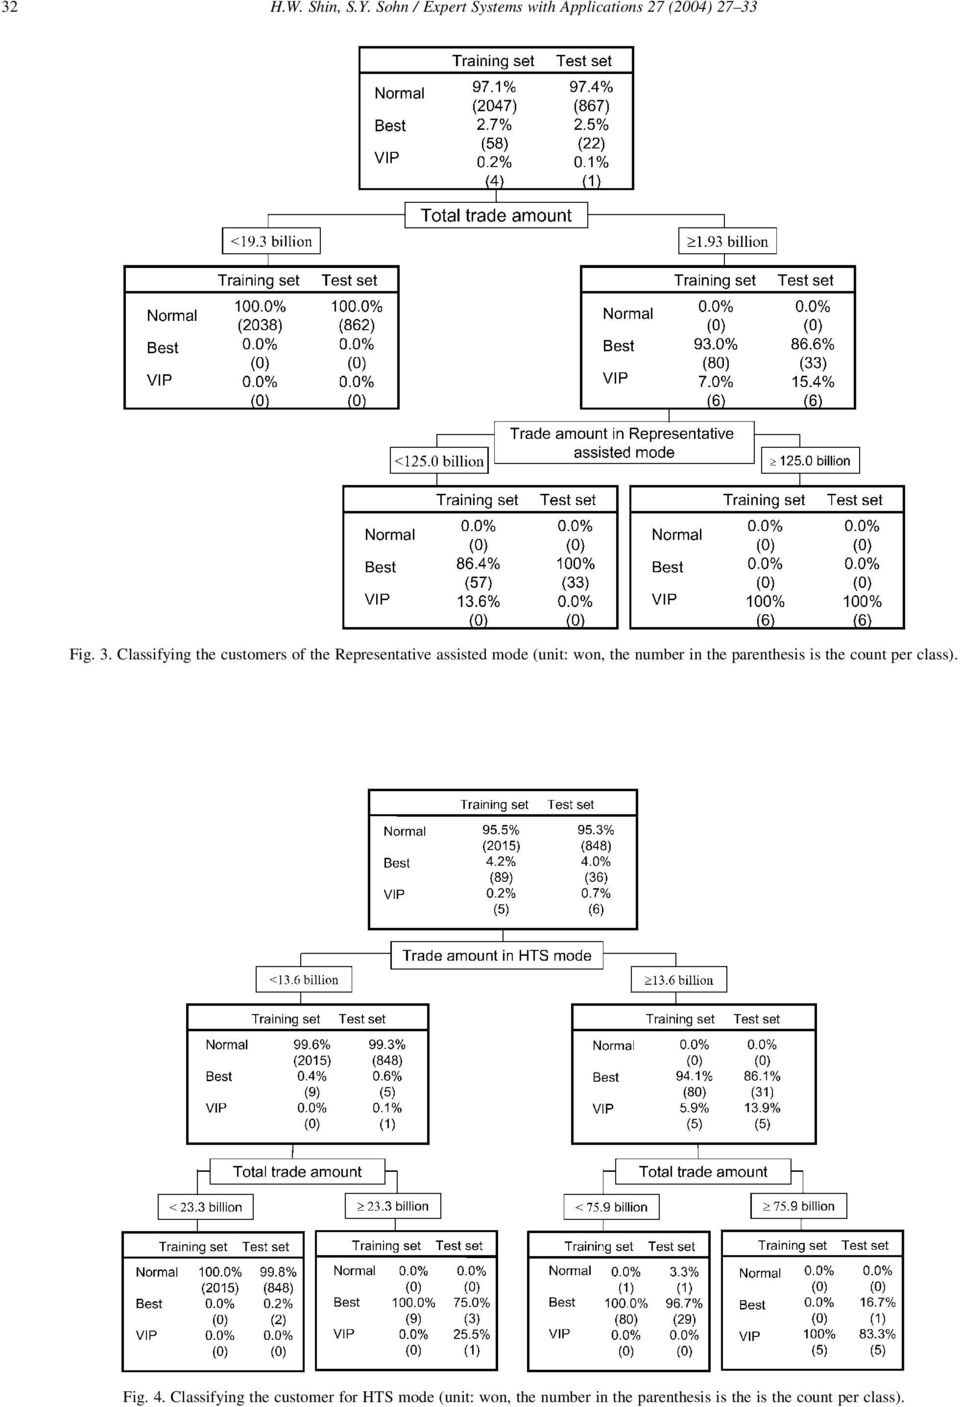 Classifying the customers of the Representative assisted mode (unit: won, the